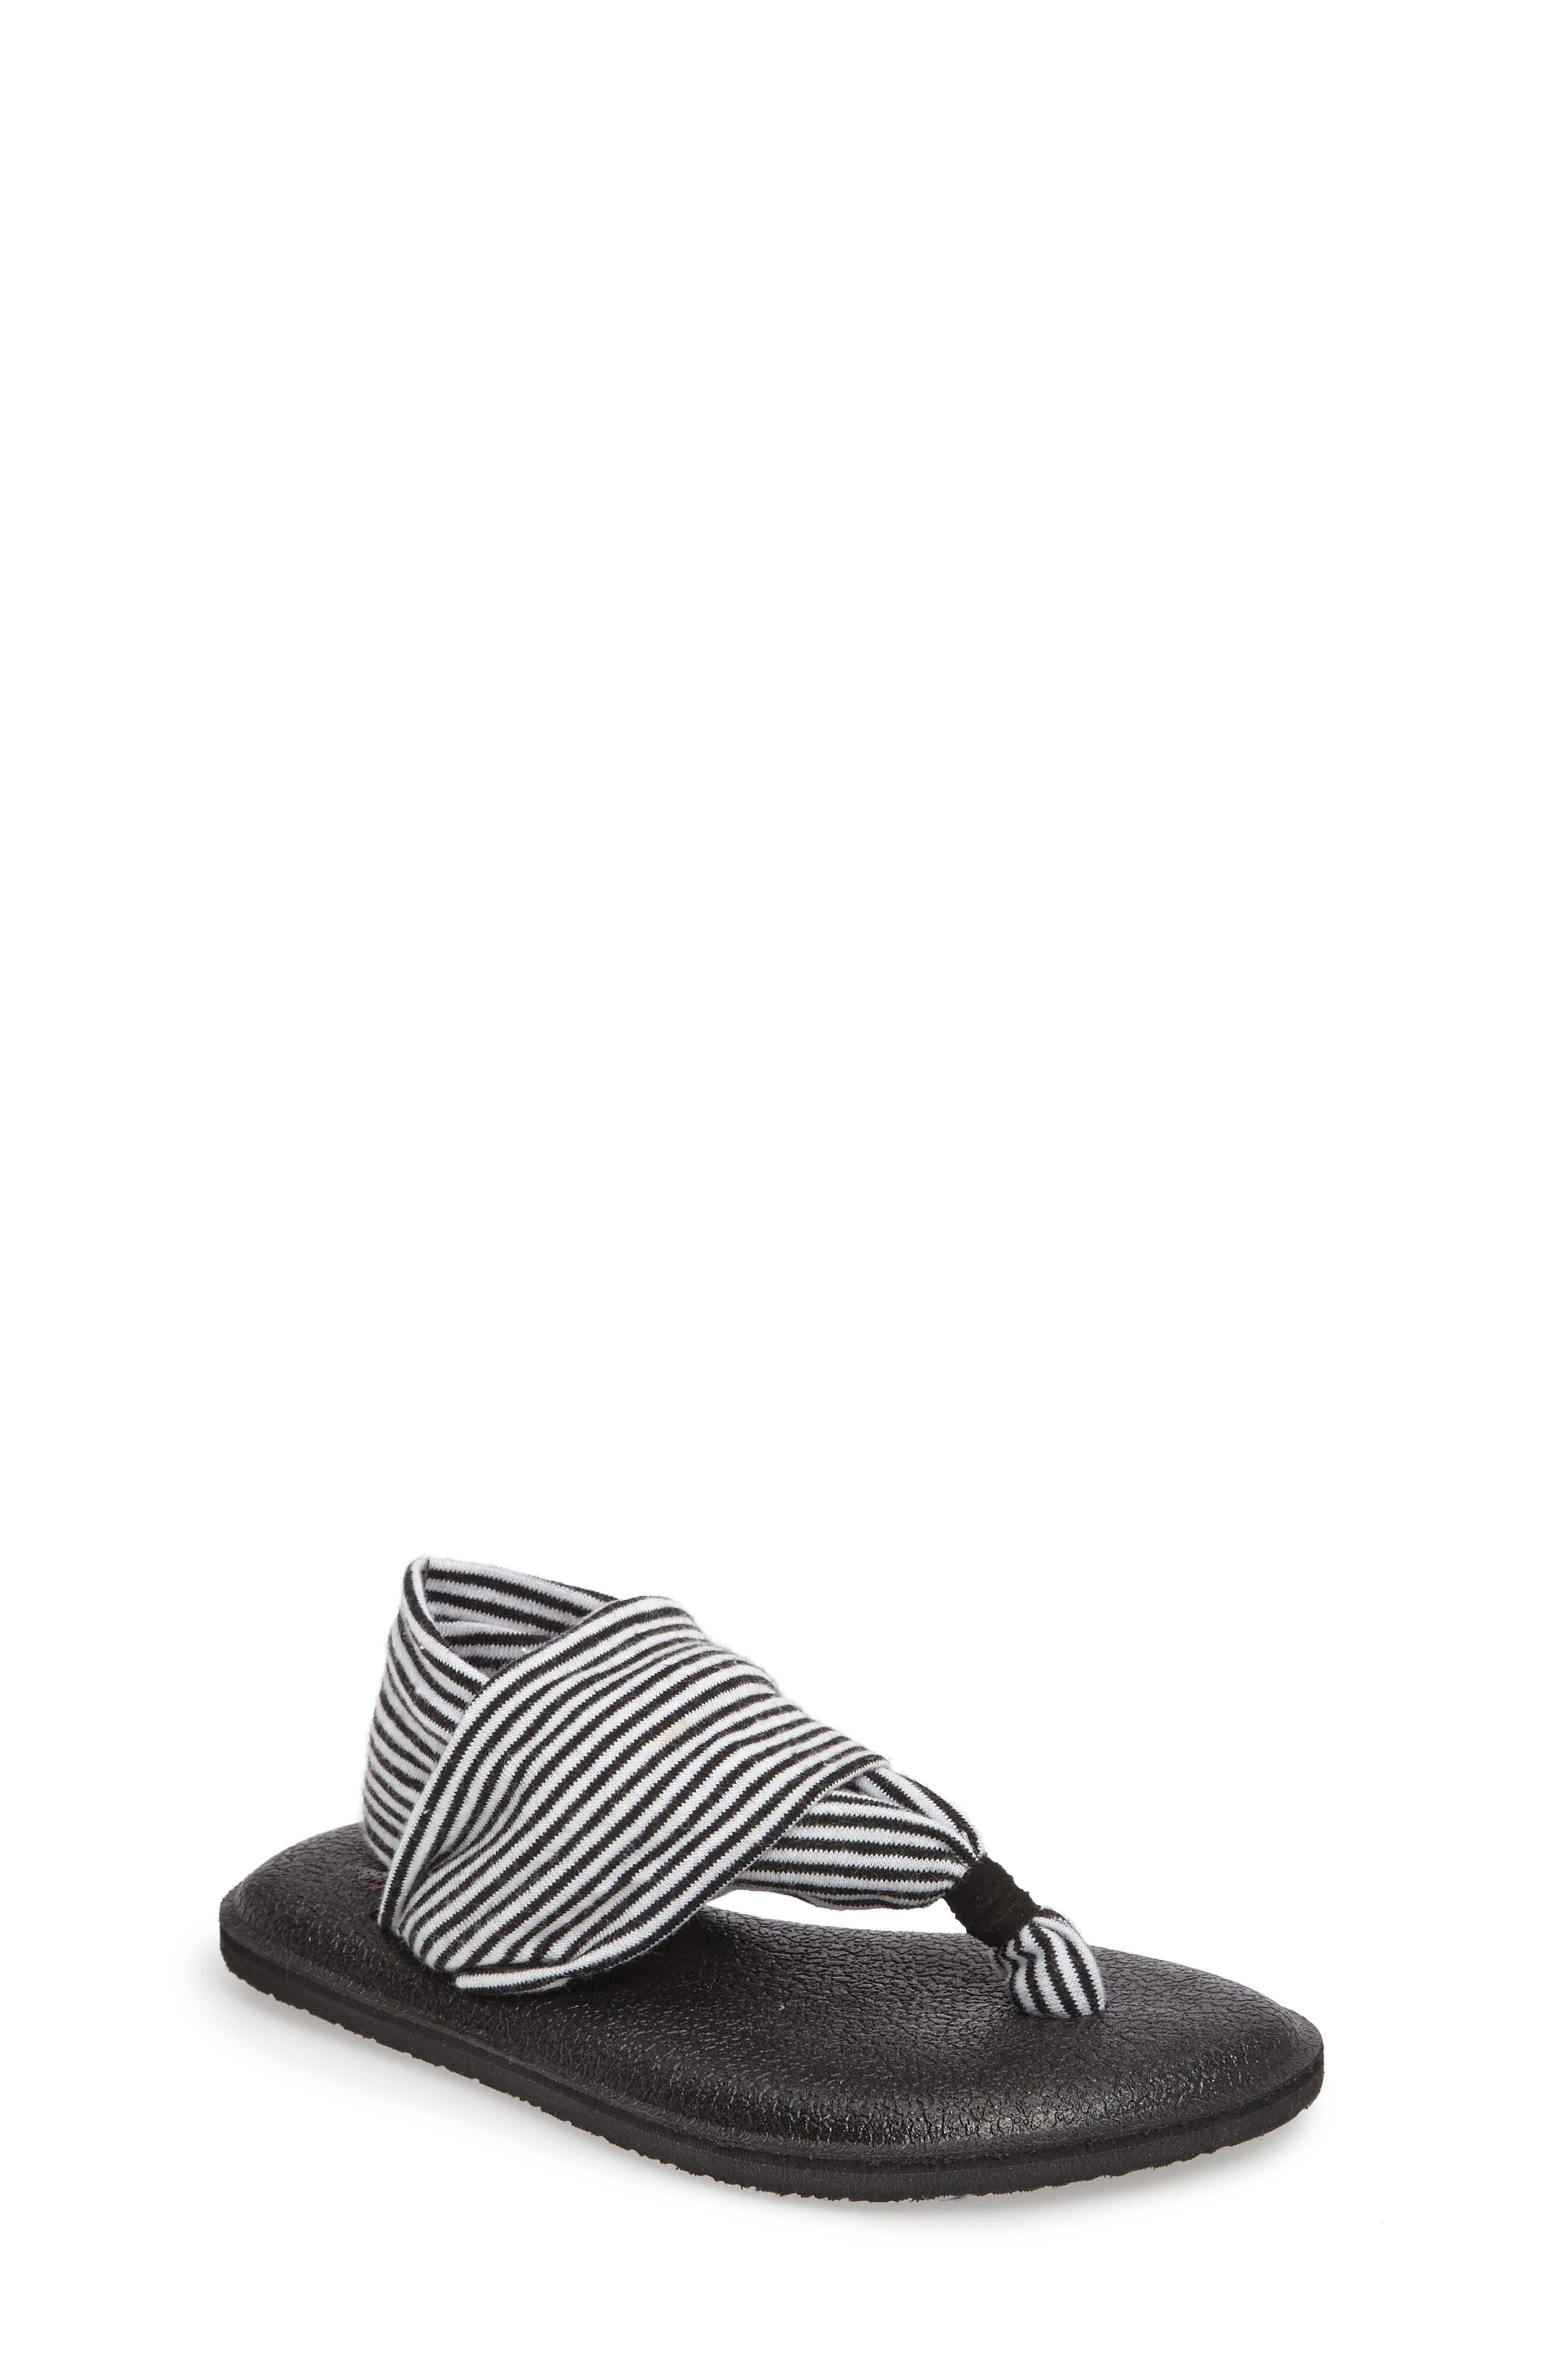 SANUK, 'Yoga Sling' Sandal, Main thumbnail 1, color, BLACK/ WHITE STRIPE